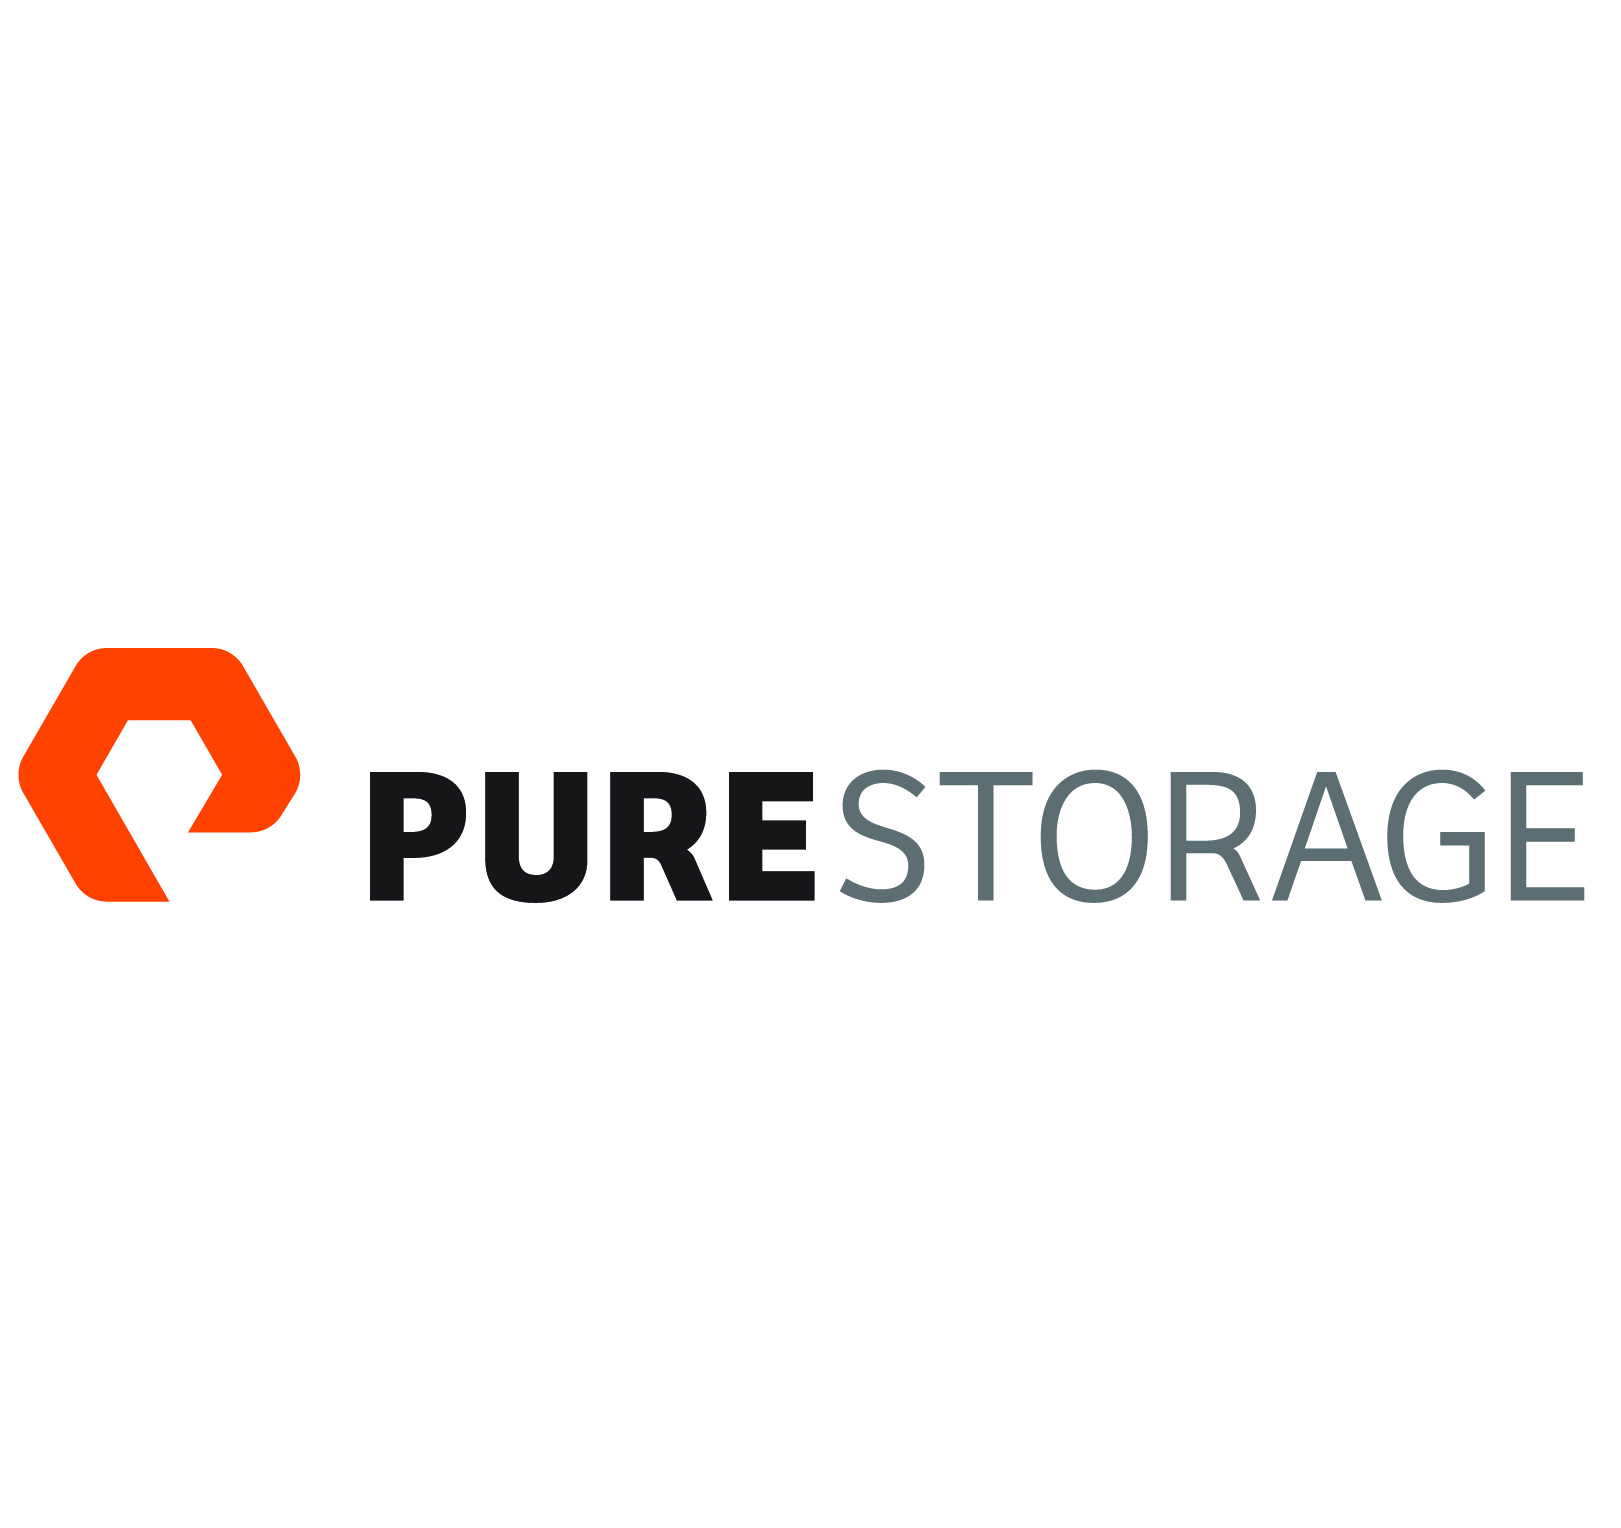 pure storage holder.jpg